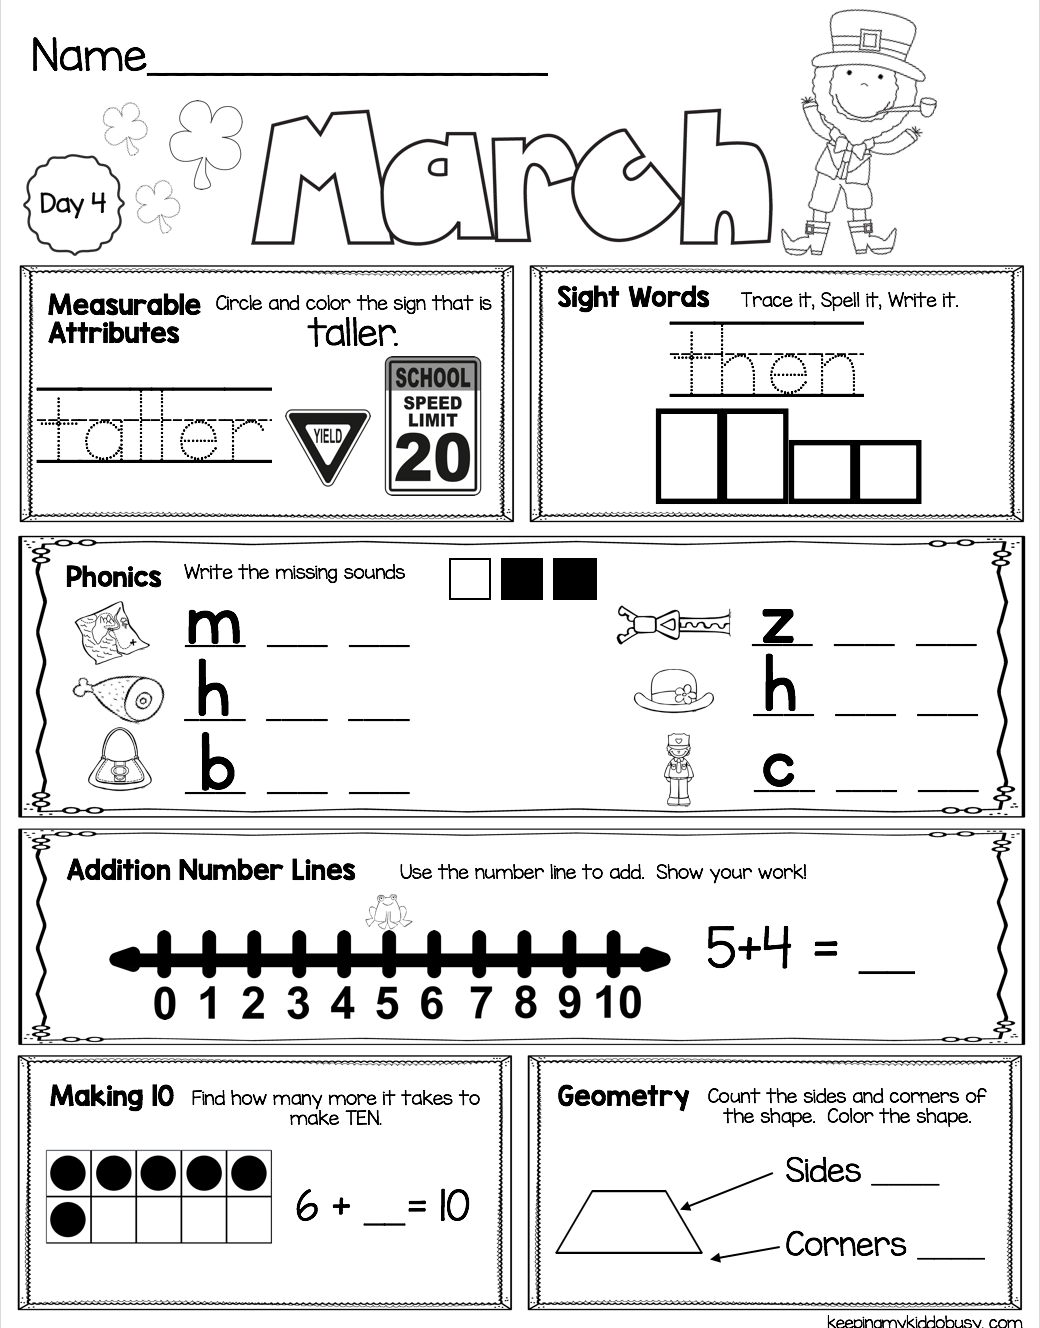 Pin By Susan Mapp On Math Ideas